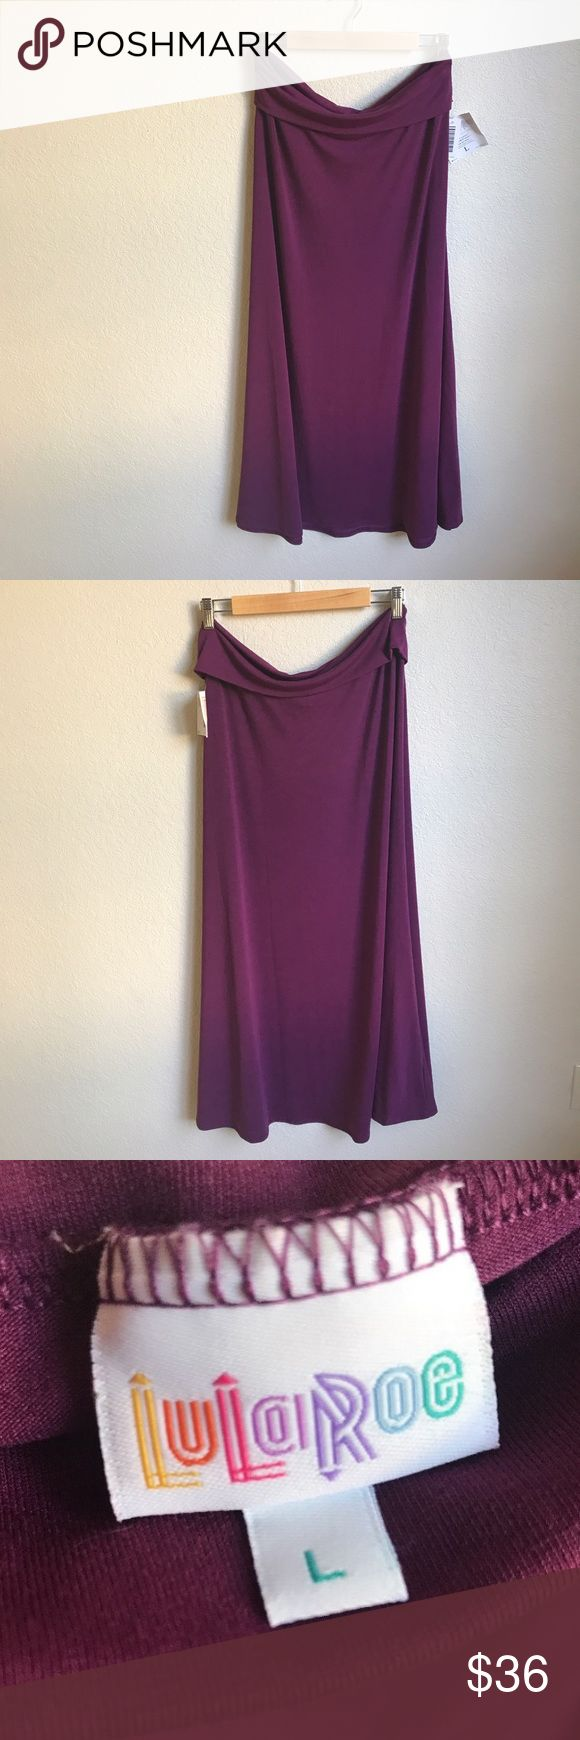 LuLaRoe Solid Purple Maxi Skirt Size Large NWT Brand new with tags LuLaRoe Maxi Skirt in solid purple/plum, size Large. See photos for details and ask any questions prior to purchase.  Thanks! LuLaRoe Skirts Maxi